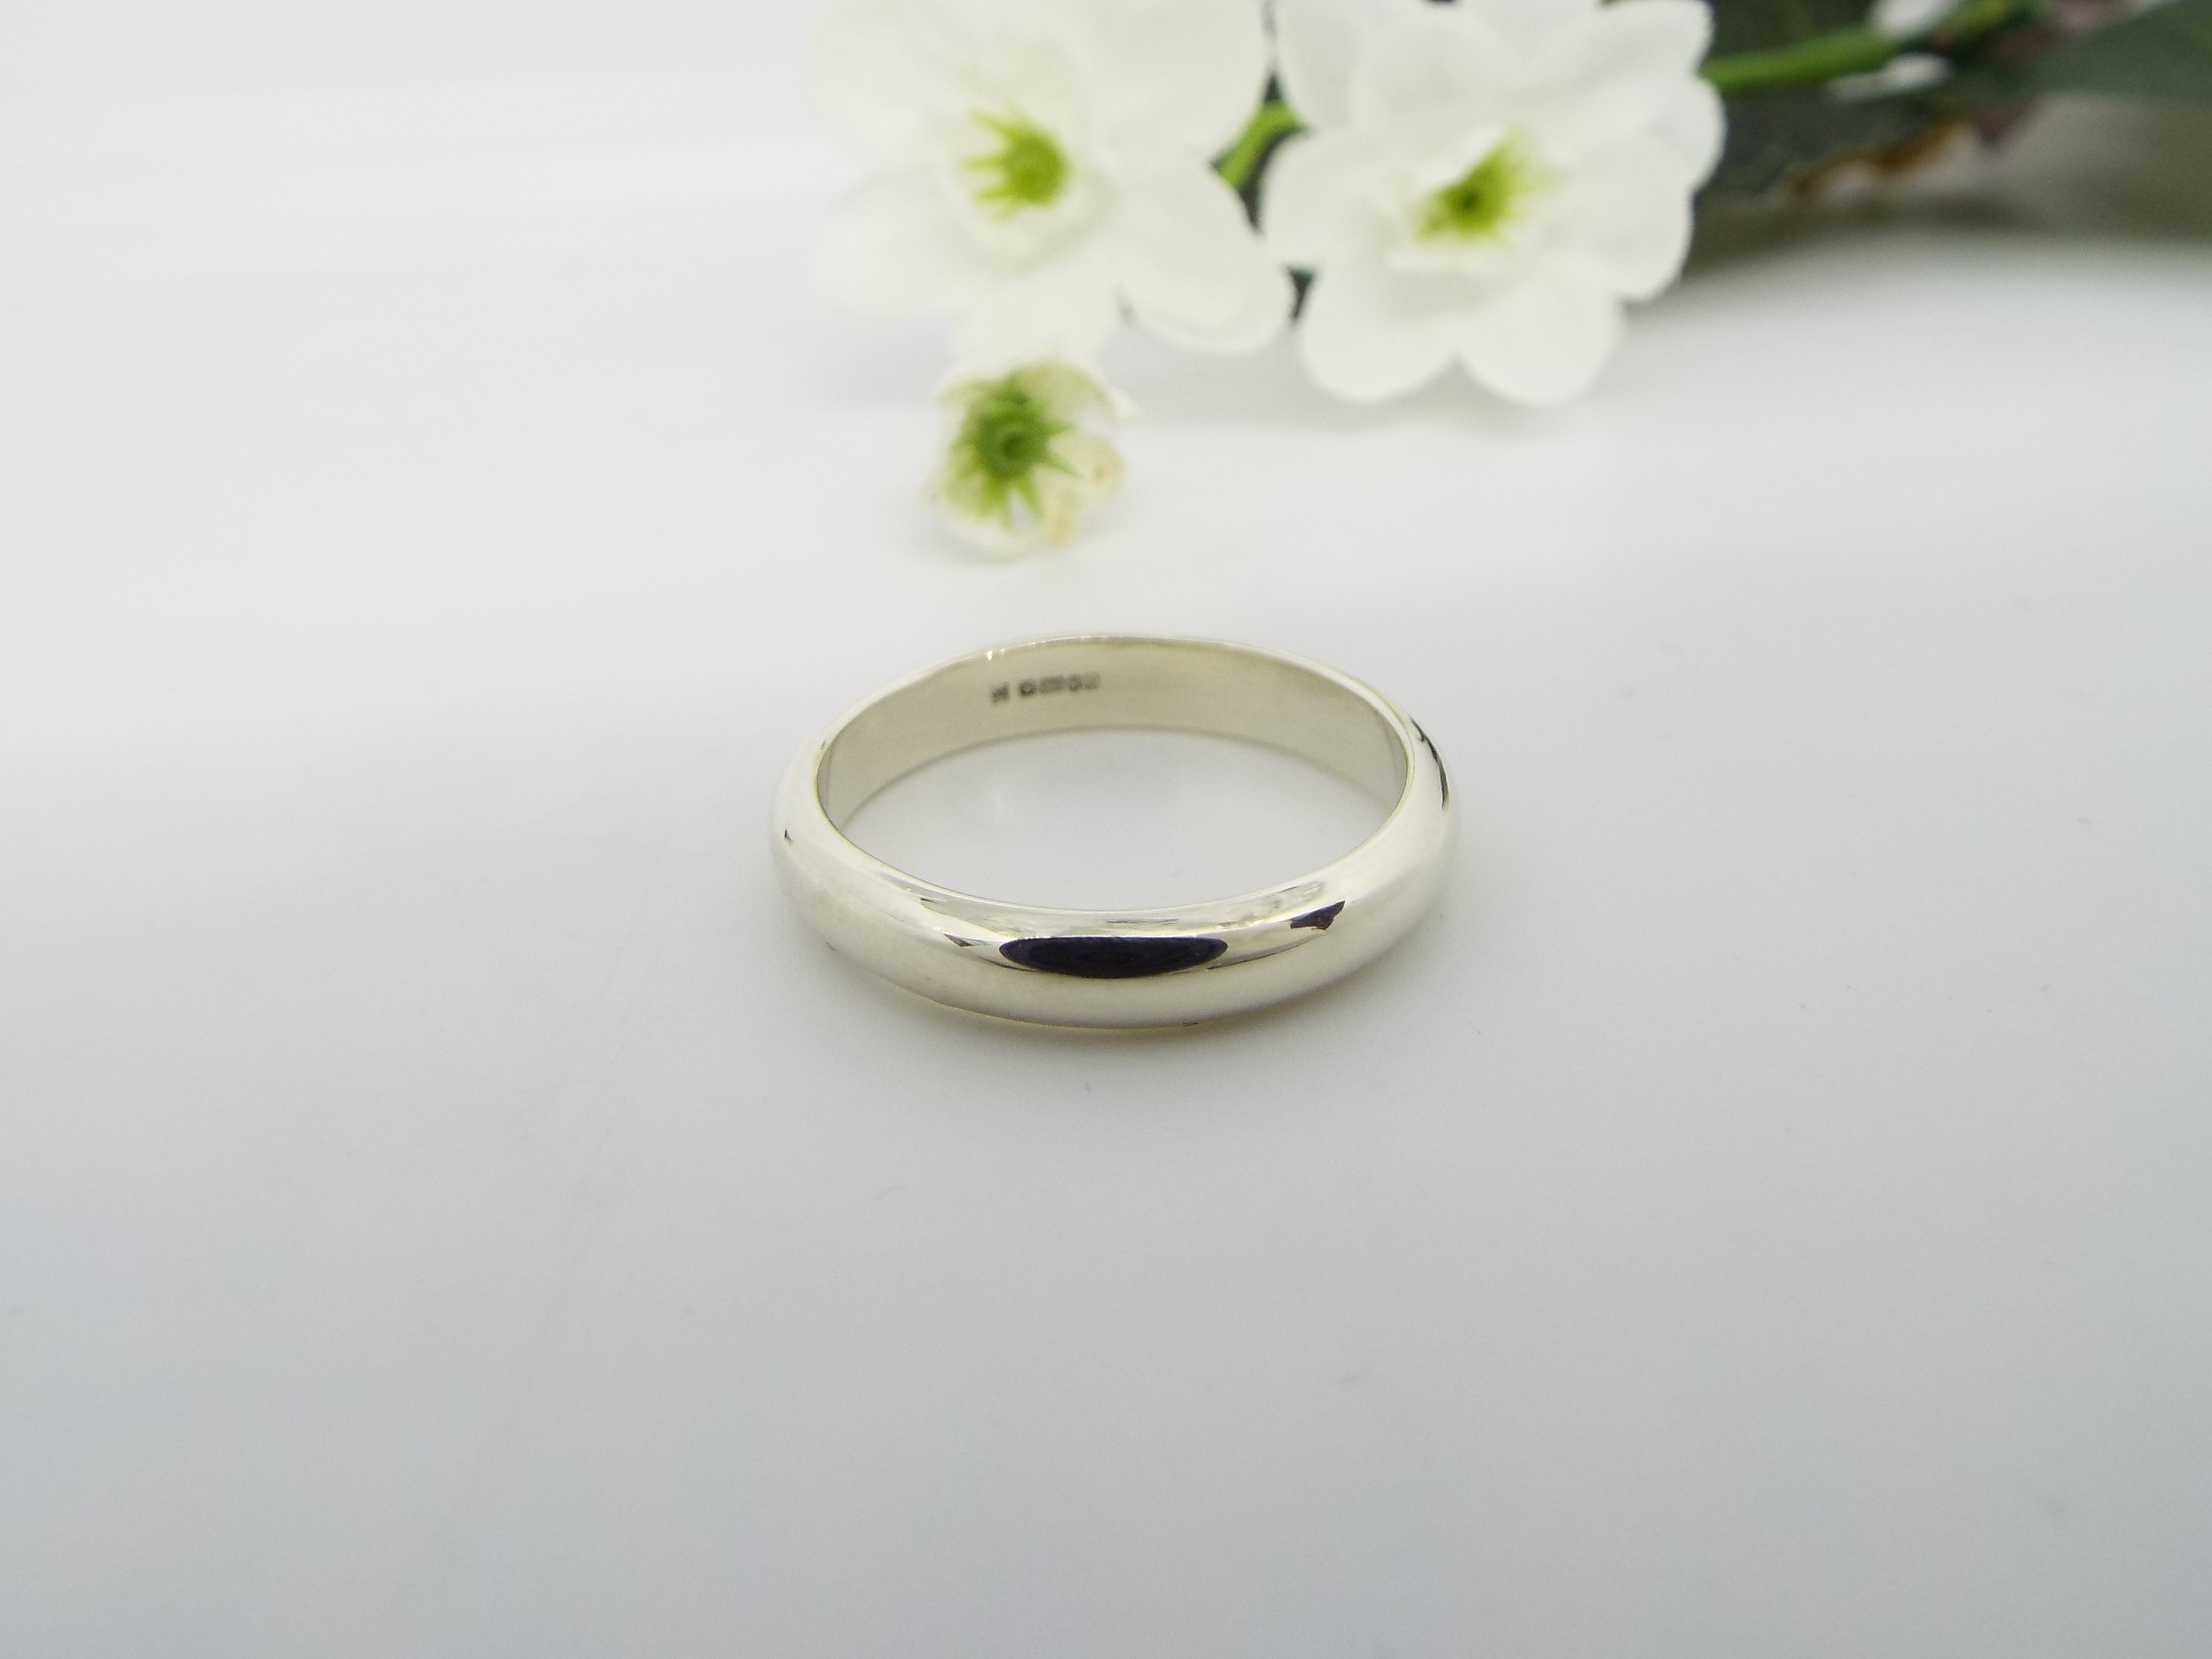 9ct White Gold Wedding Ring - Smooth polished - Wide